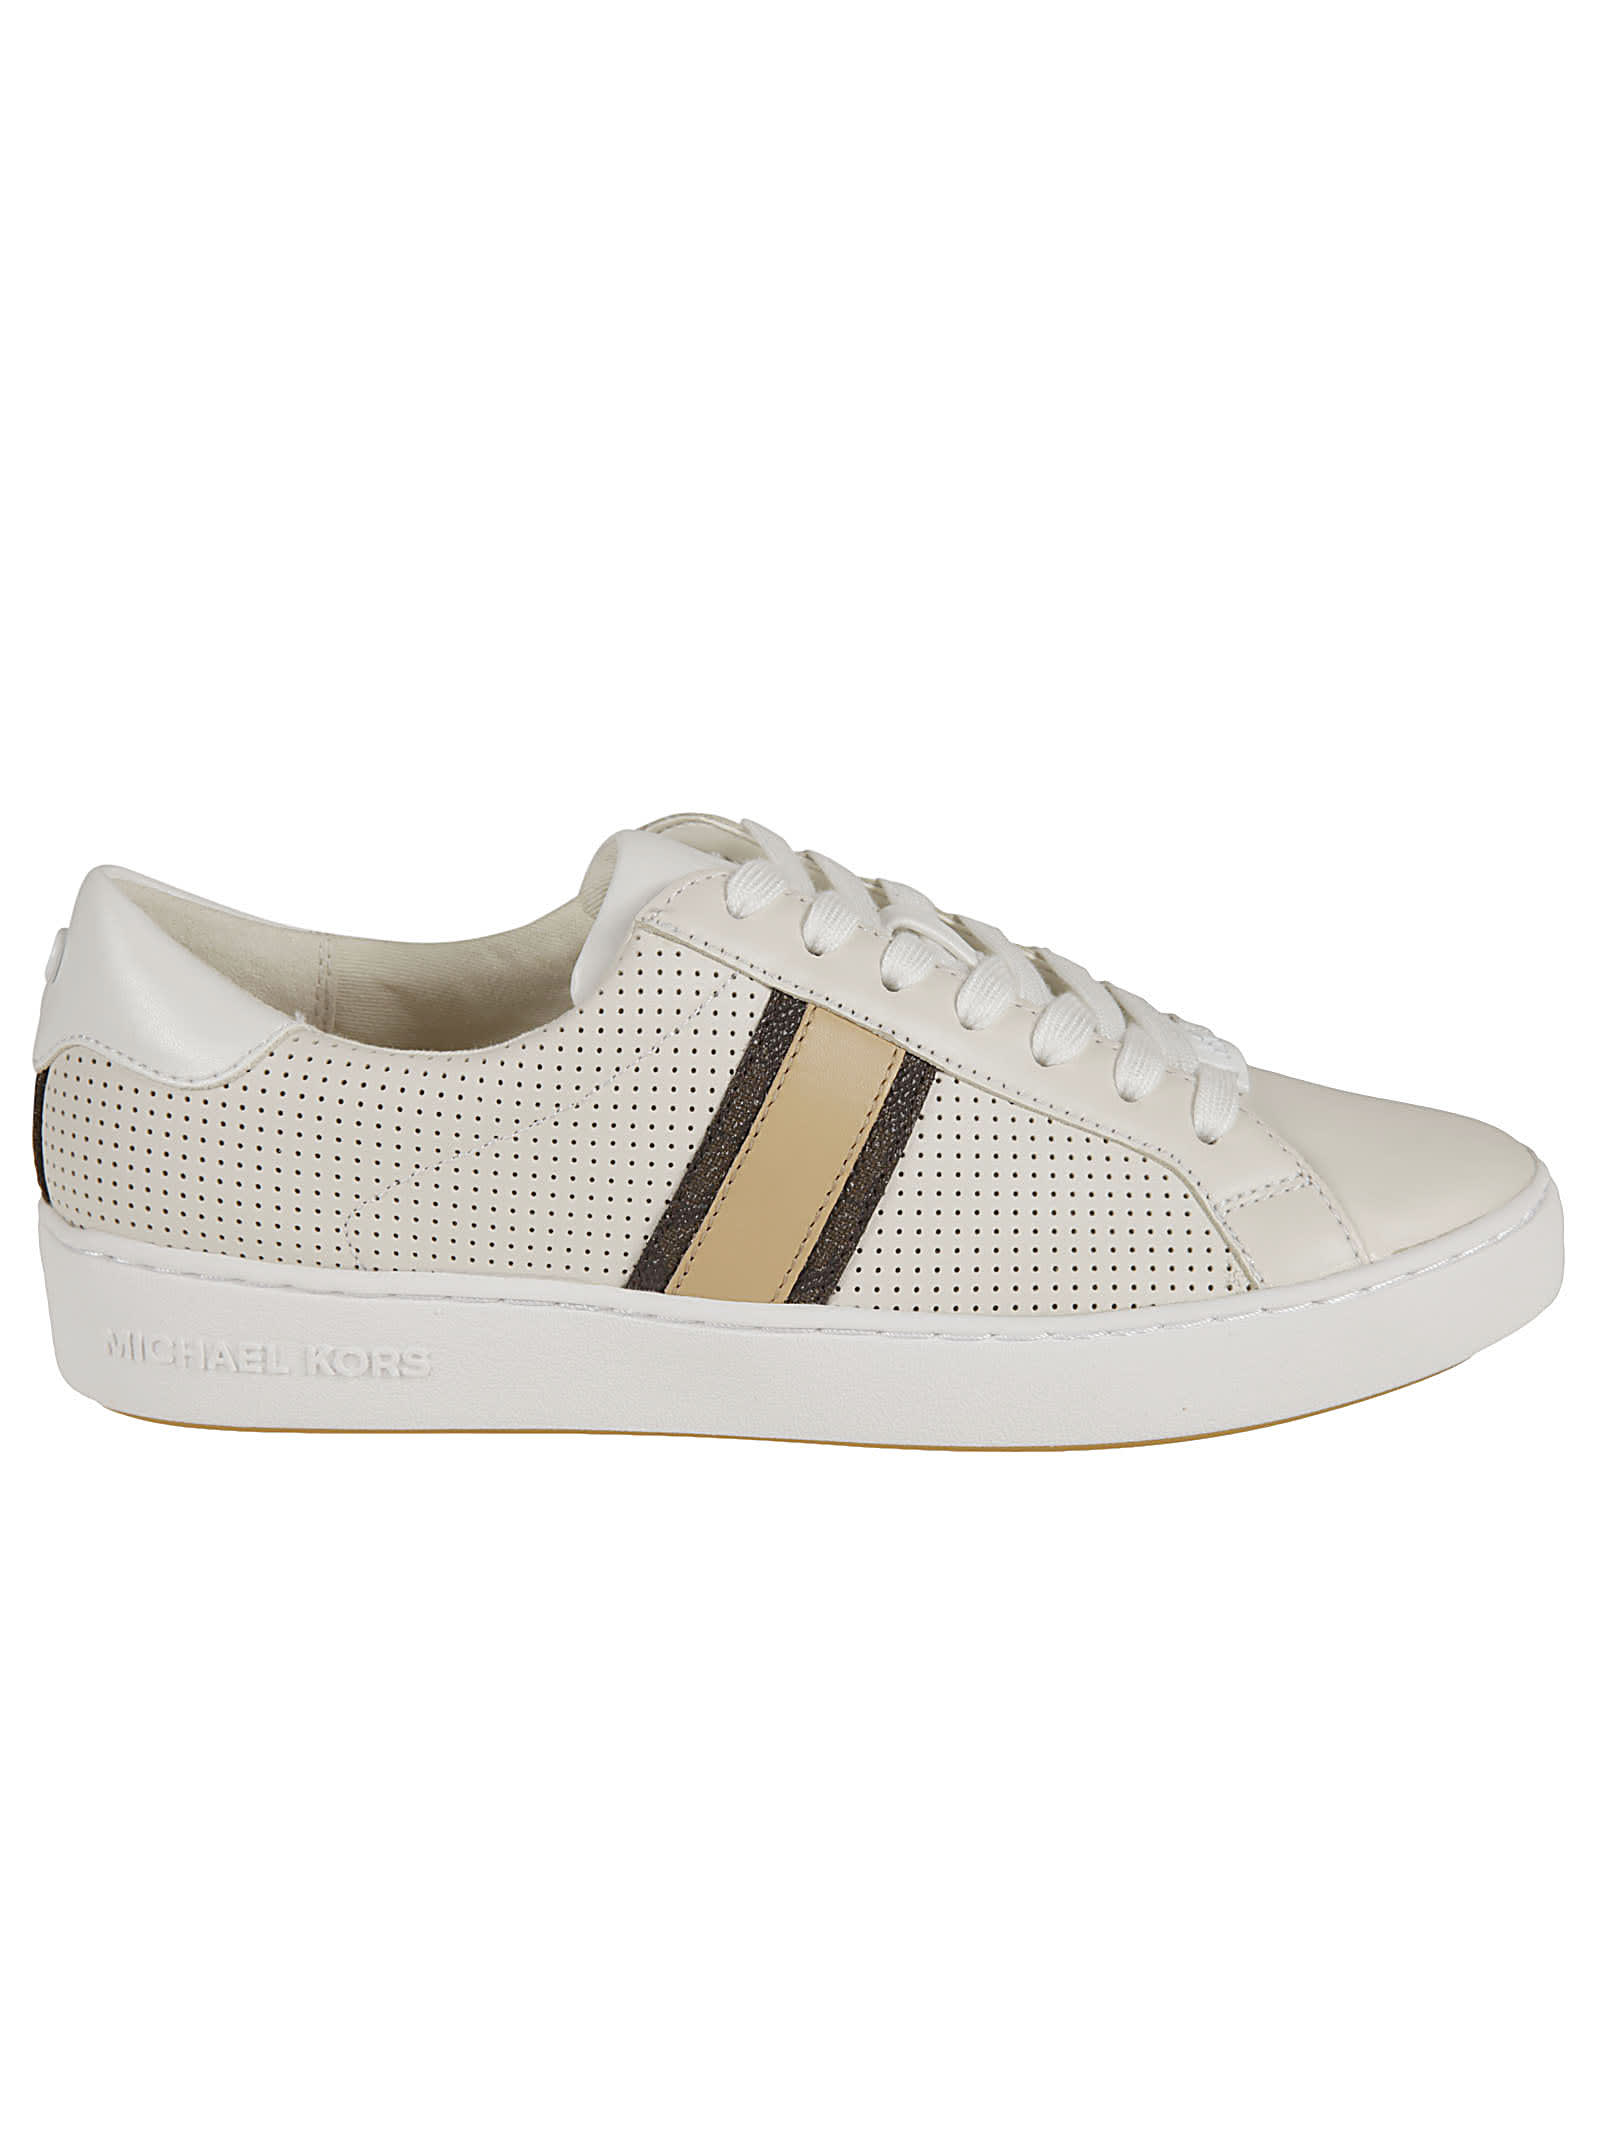 Michael Kors IRVING STRIPE LACE-UP SNEAKERS